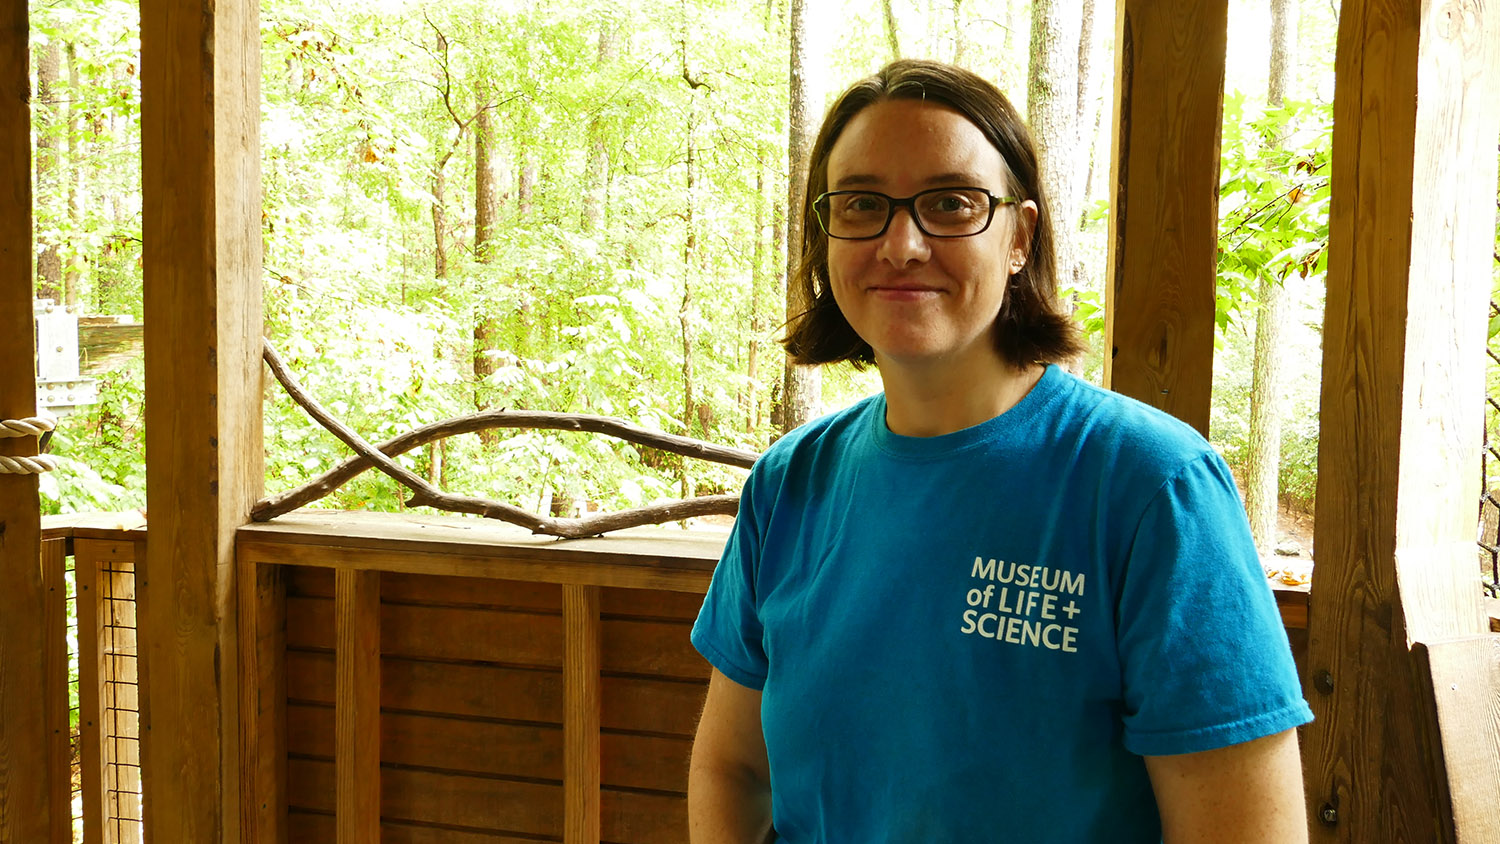 Jill Brown stands in front of exhibit wearing turquoise shirt